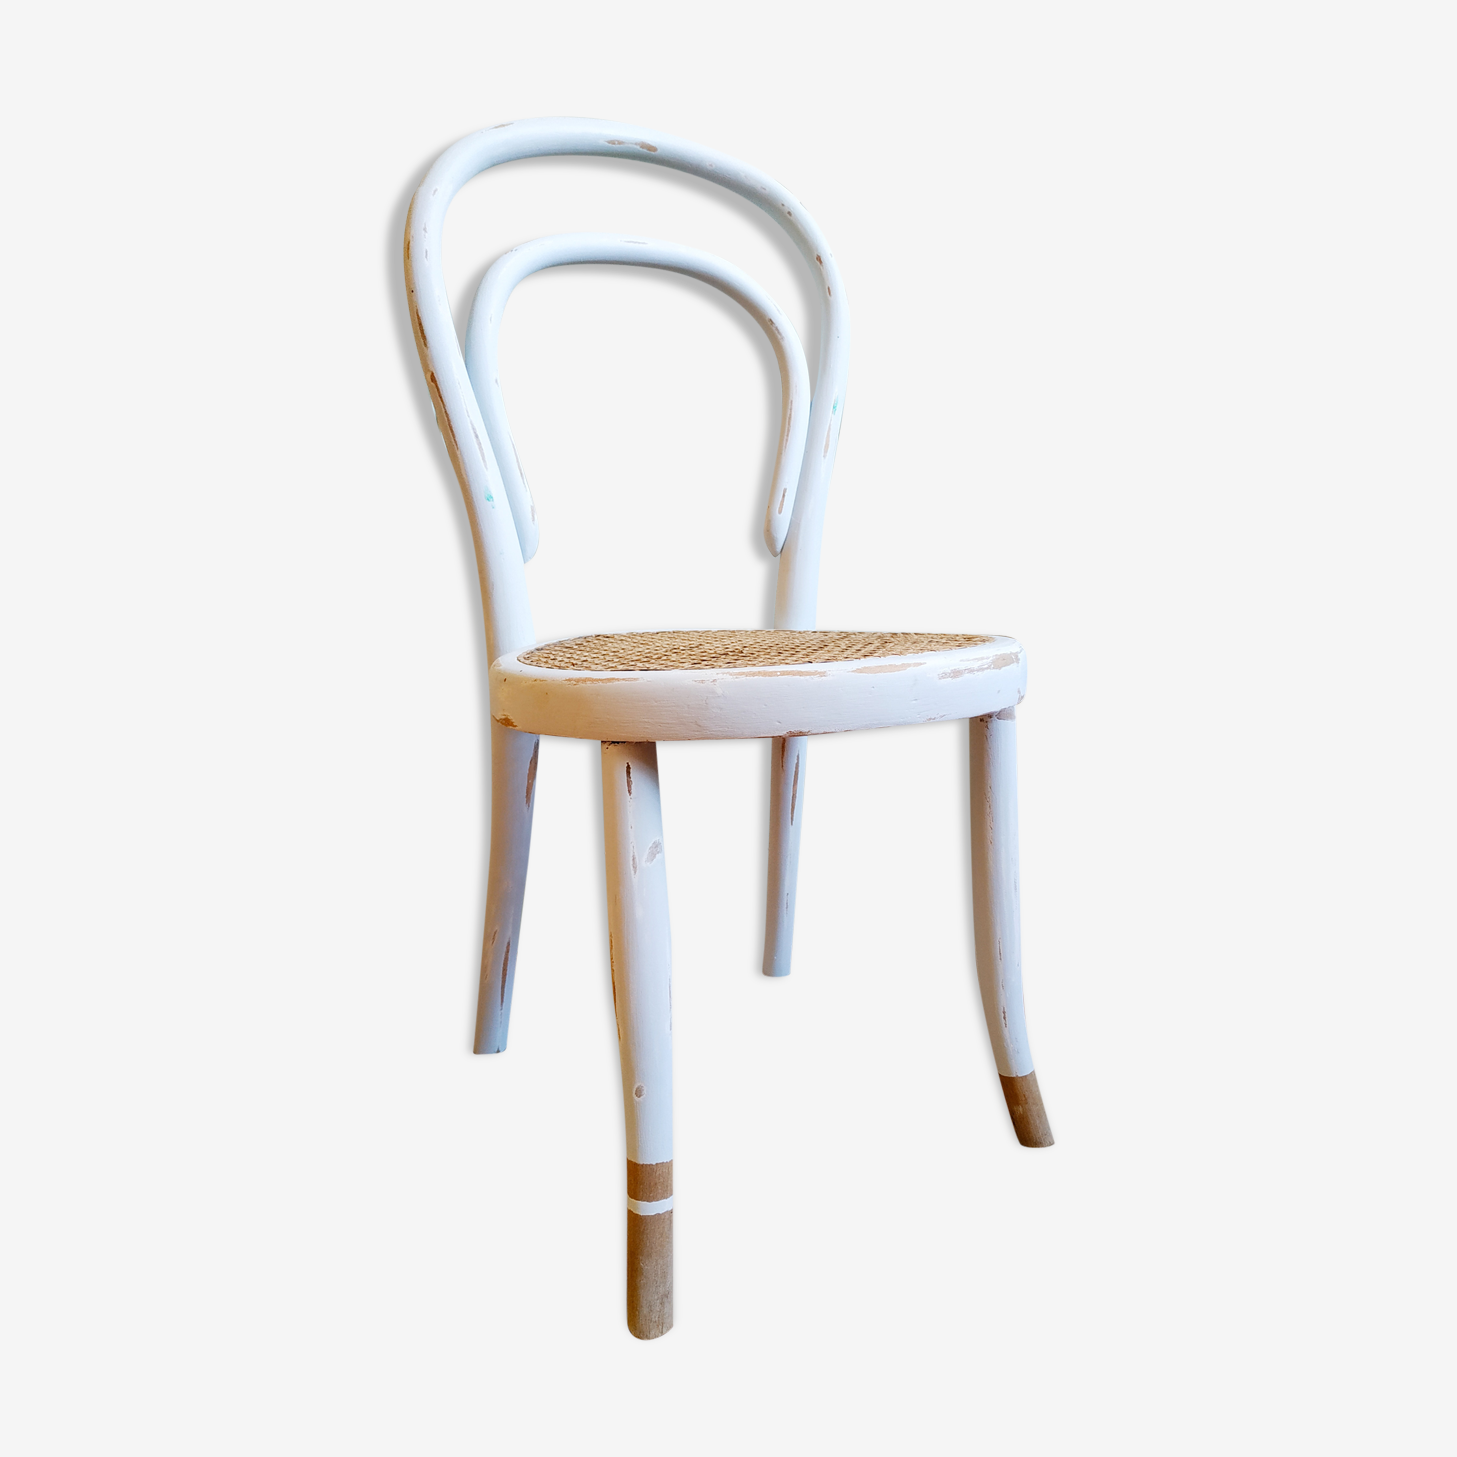 Chair bentwood Thonet vintage